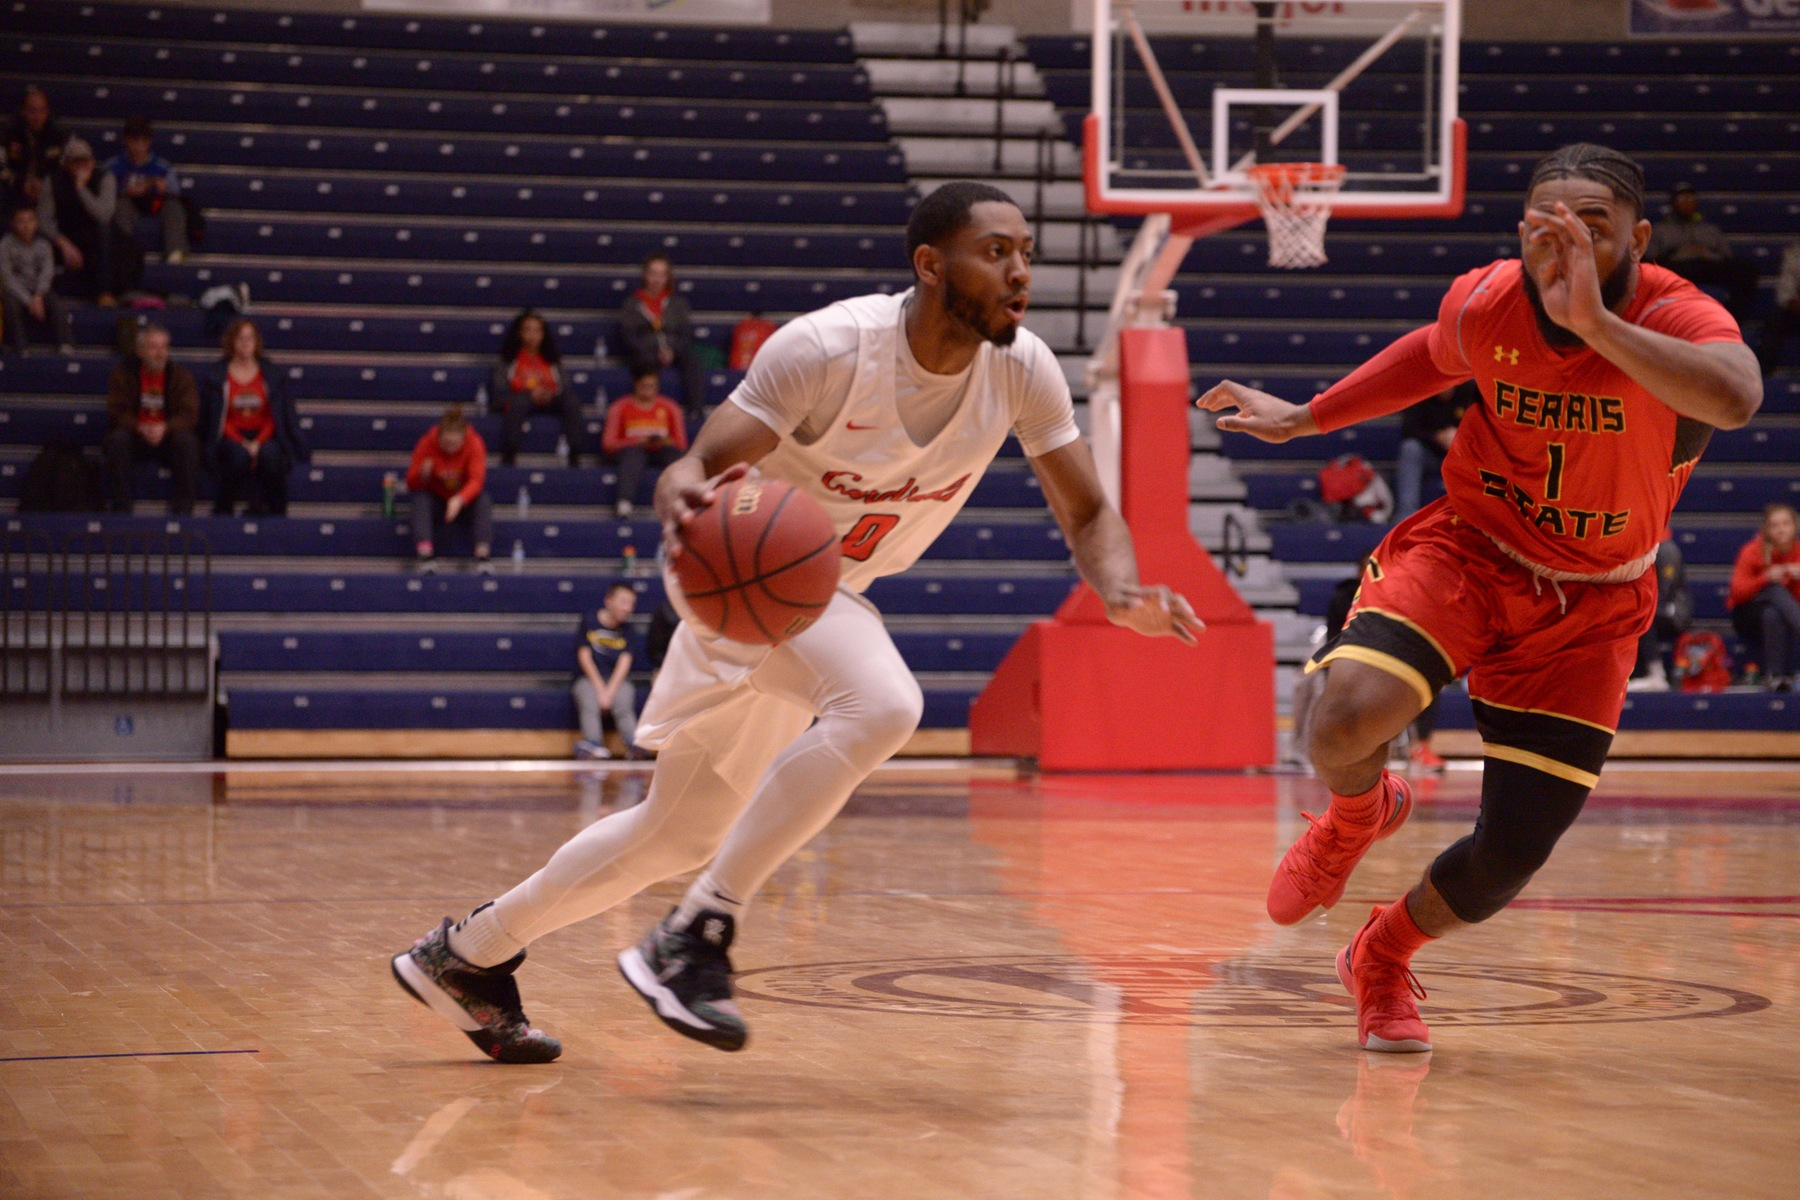 Bulldogs claim 92-70 victory over Cardinals in league action